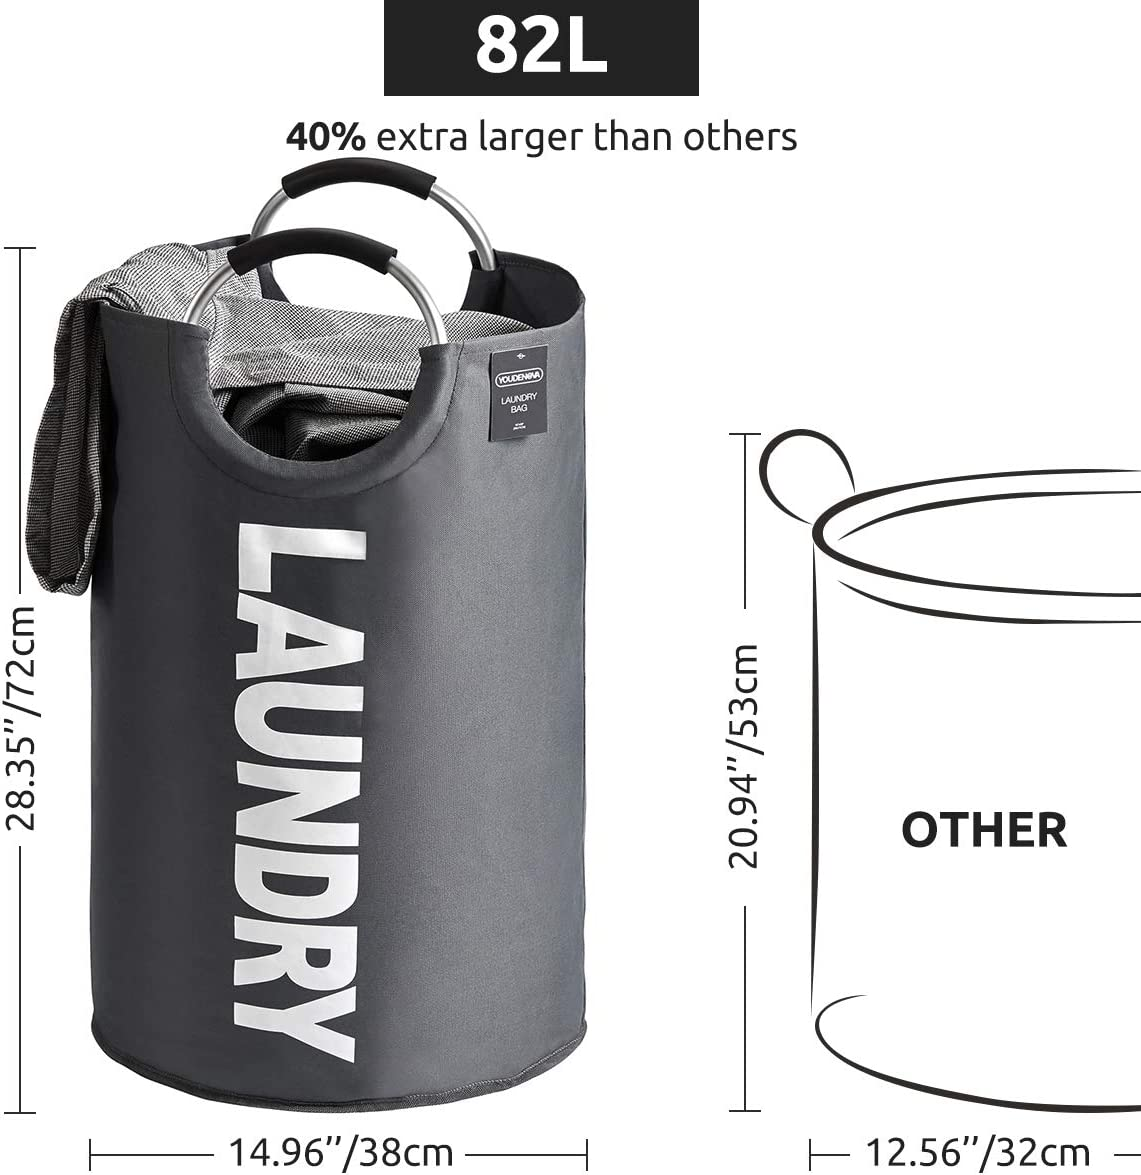 collapsible laundry hamper